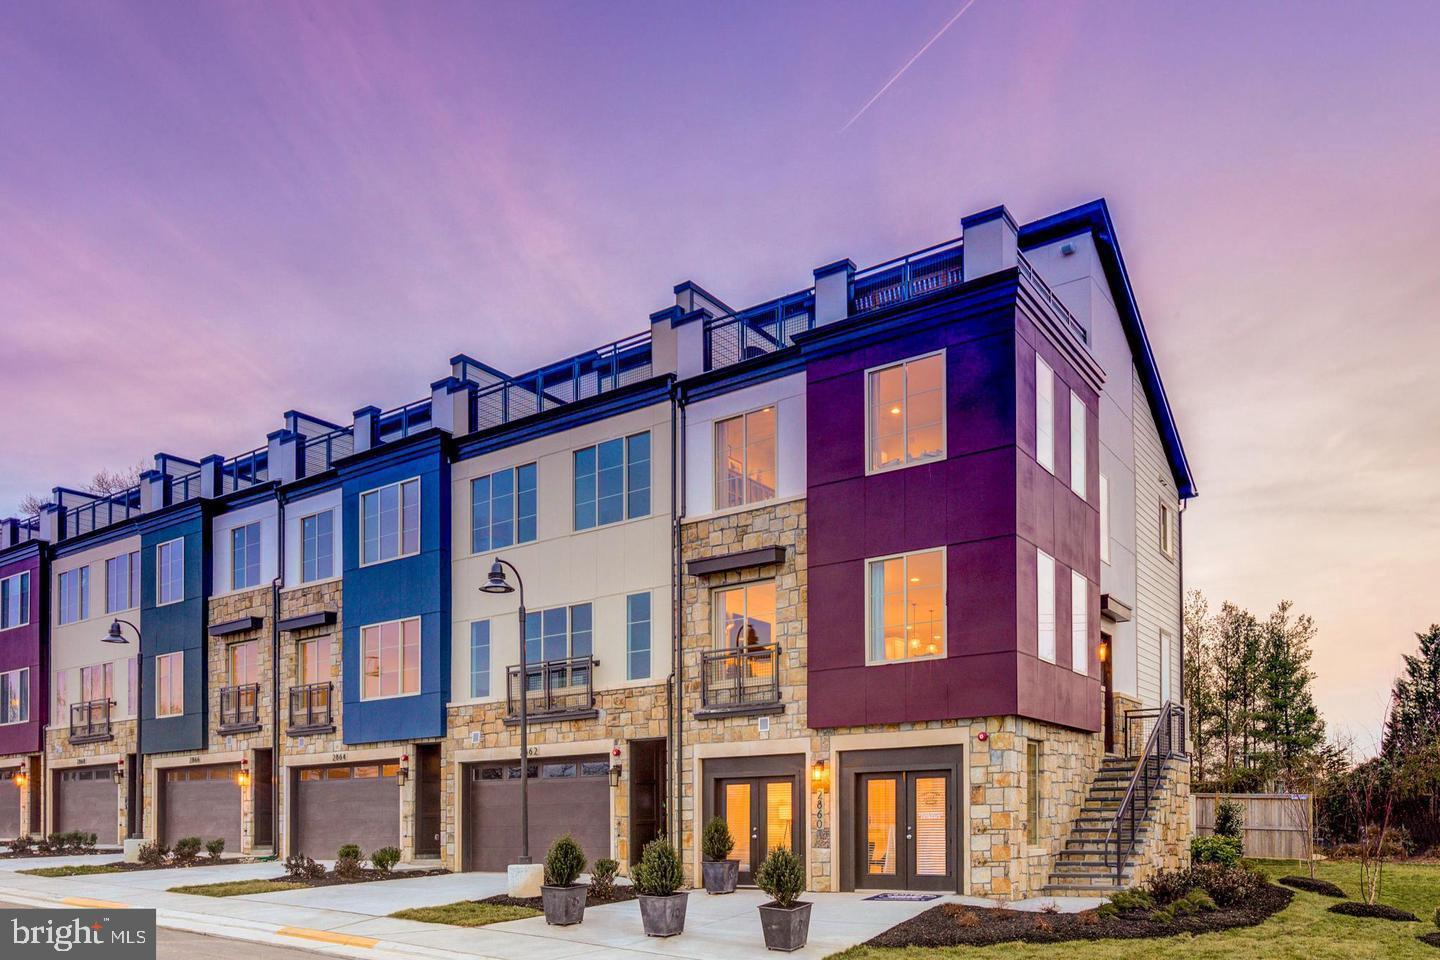 Visit the Award Wining & Best Value in Alexandria. New Energy Star TH, Rooftop Terr, 4 LVL, 4 Bed., with backyard and driveway. High-end Included Features. Summer/Fall Move-in. Walkable retail, minutes to metro & I-495. Ask about Incentives/Closing Costs. Warranties Inc. Call Lori Windsor Now for appt. & details.